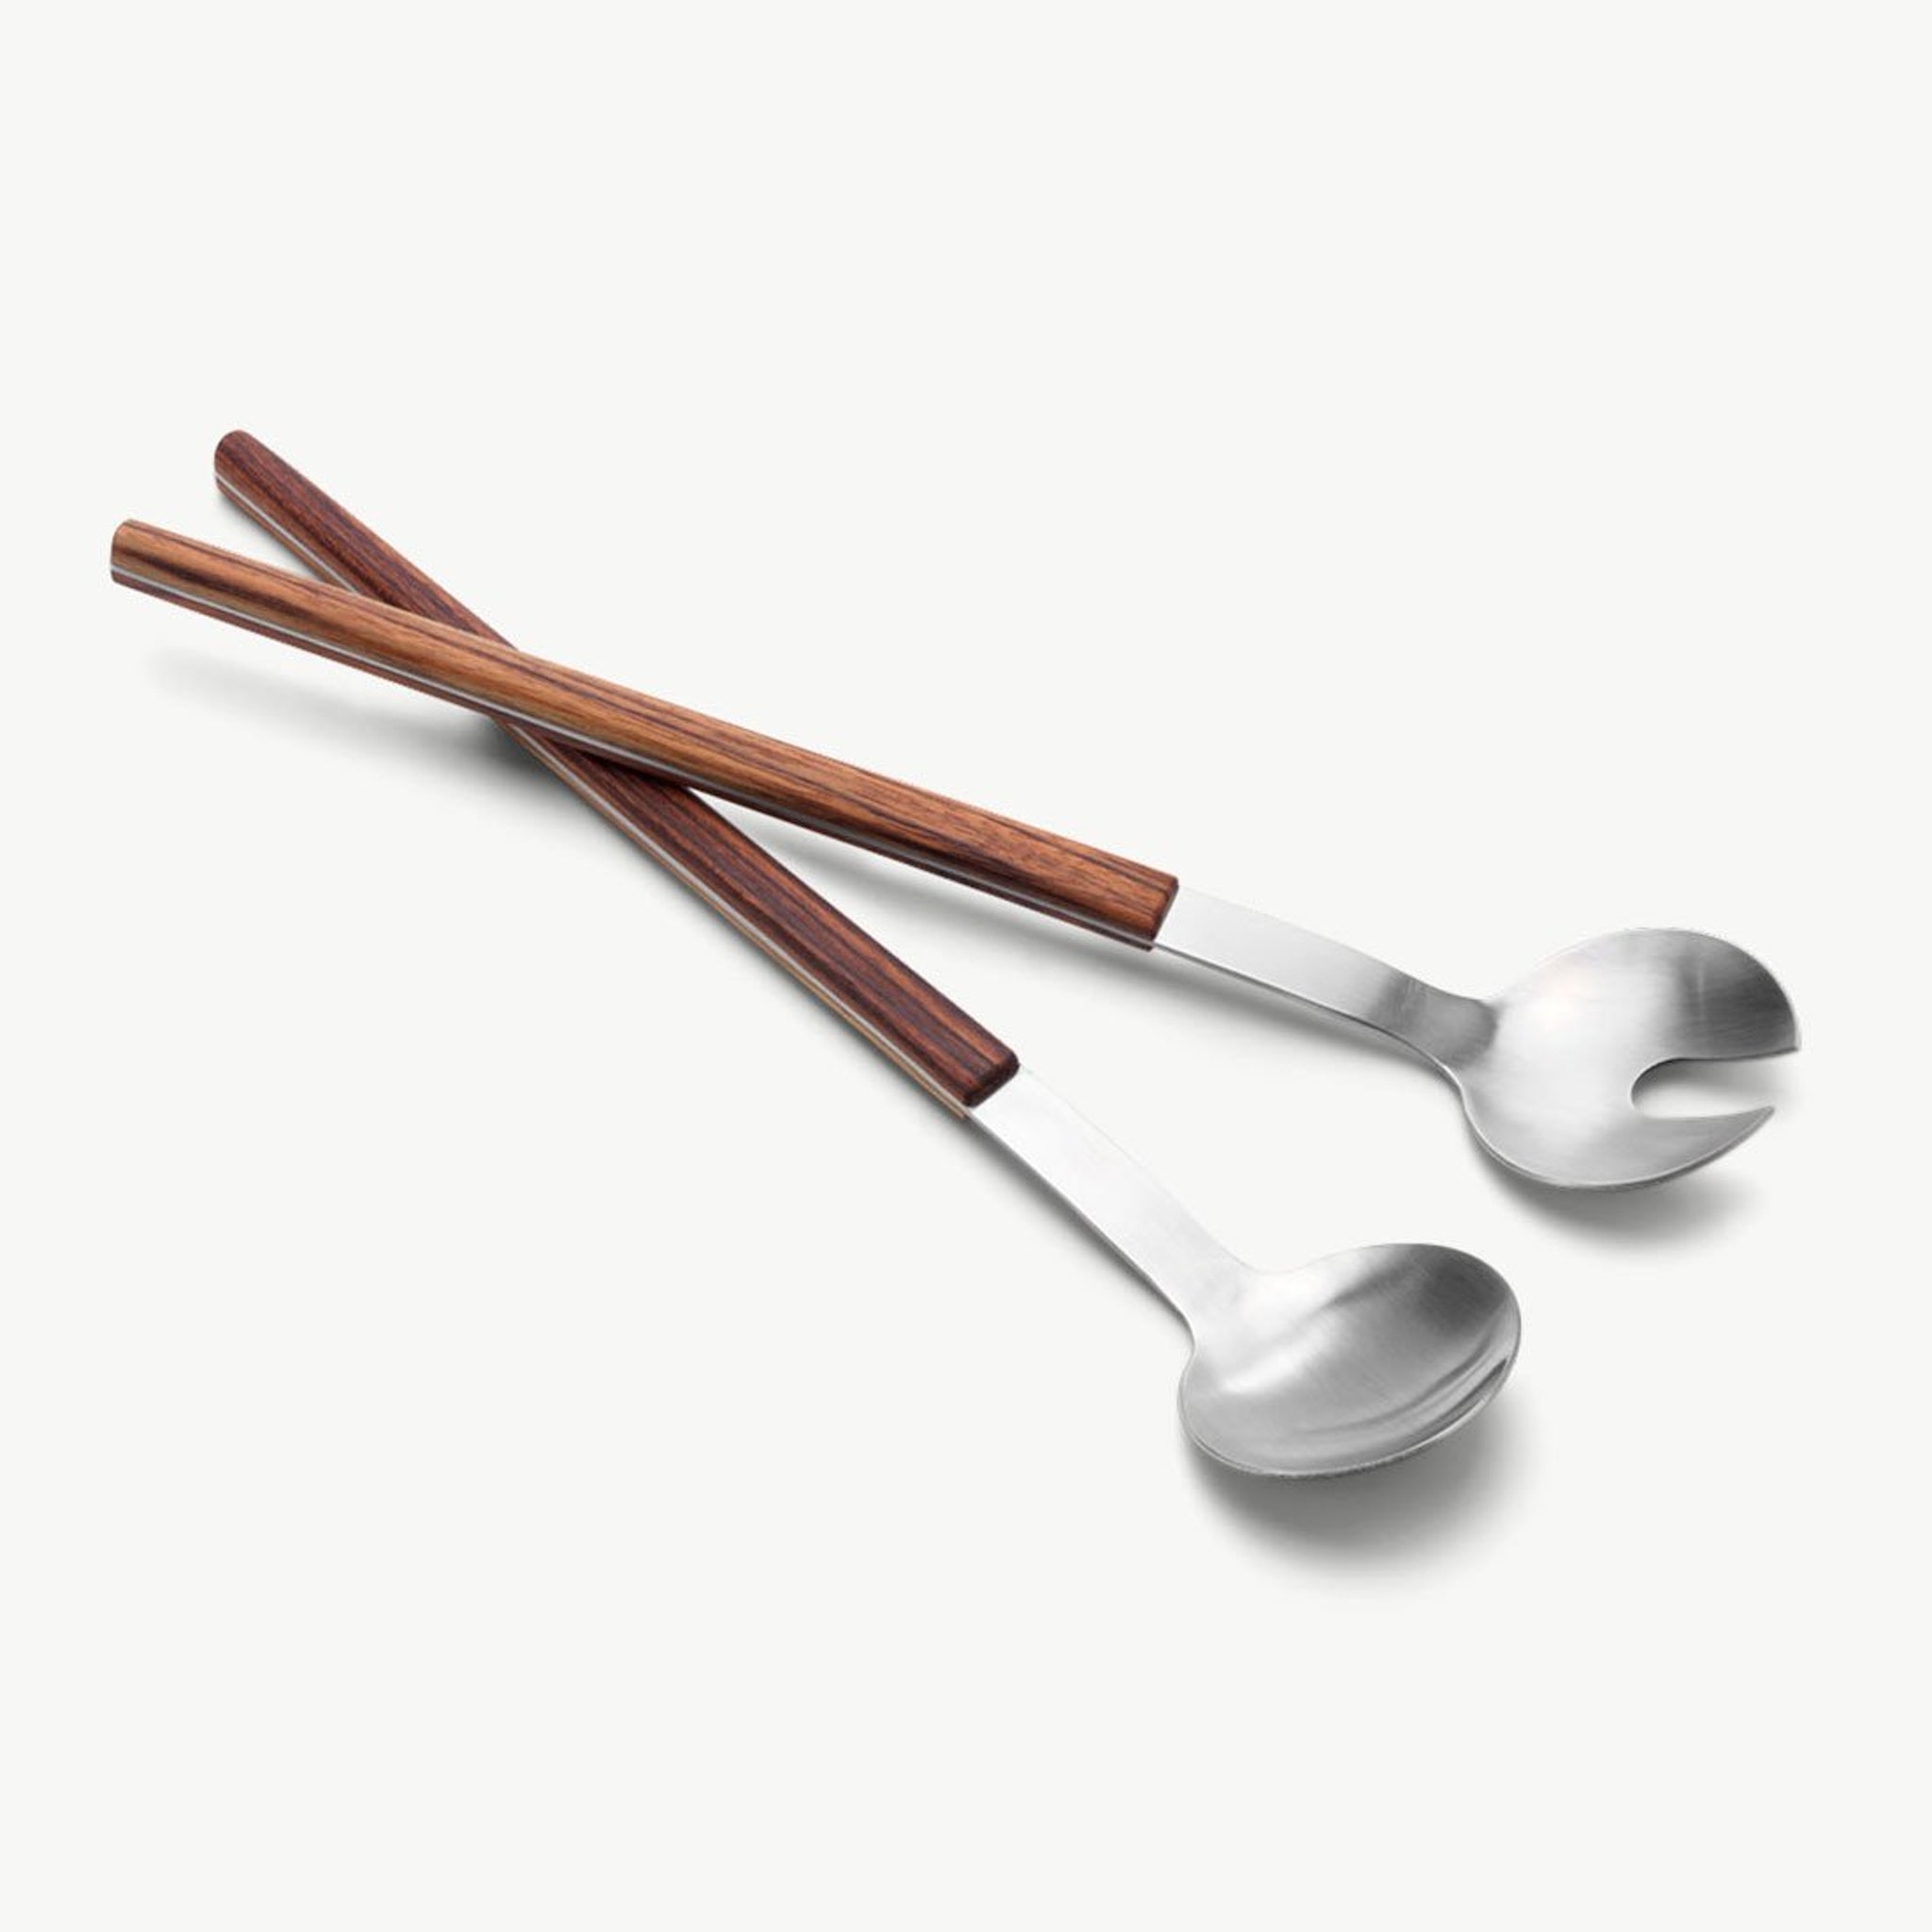 Nordic Salad Servers by Skagerak